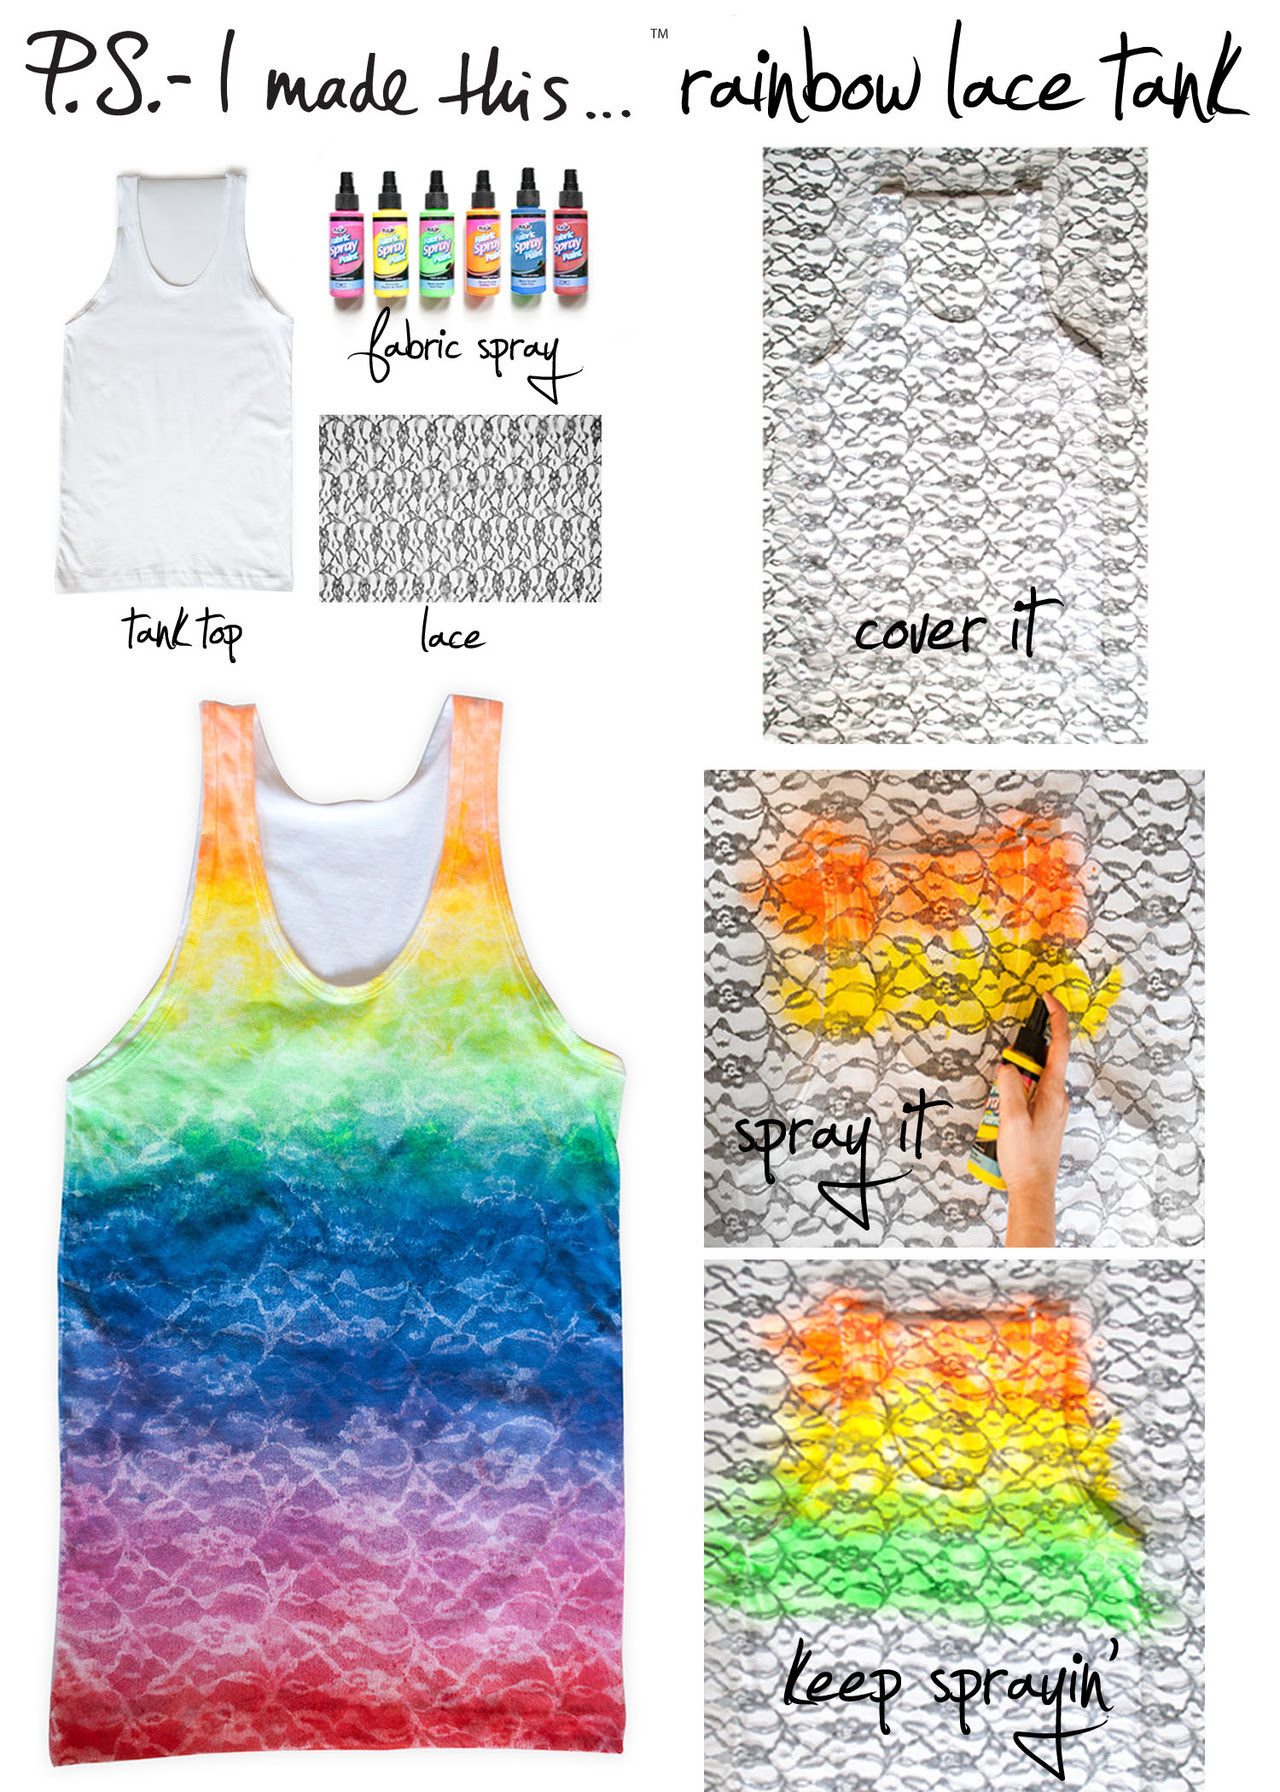 "Make your technicolor dreams come true with a DIY that takes the delicate simplicity of lace to a bold and vibrant place. The pretty prisms of Christopher Kane's Resort 2012 collection prove that going full spectrum can literally be like wearing a good mood…so get a taste of the rainbow by creating this chic tinted tank!      To create:  Use a solid white tank as the canvas.  Find lace  that has a pattern you love- there are thousands of different options to discover! You will need about 1 yard total and can re-use the lace as a stencil once dry.  Place the lace over the tank, using a colorful fabric spray  to create a ""stripe"" across the top of the tee.  P.S.- be sure to cover the surface underneath with newspaper so the surface will not get sprayed.  Continue to spray the remainder of the tank, alternating colors and slightly overlapping them to give the colors a seamless and beautiful rainbow effect."